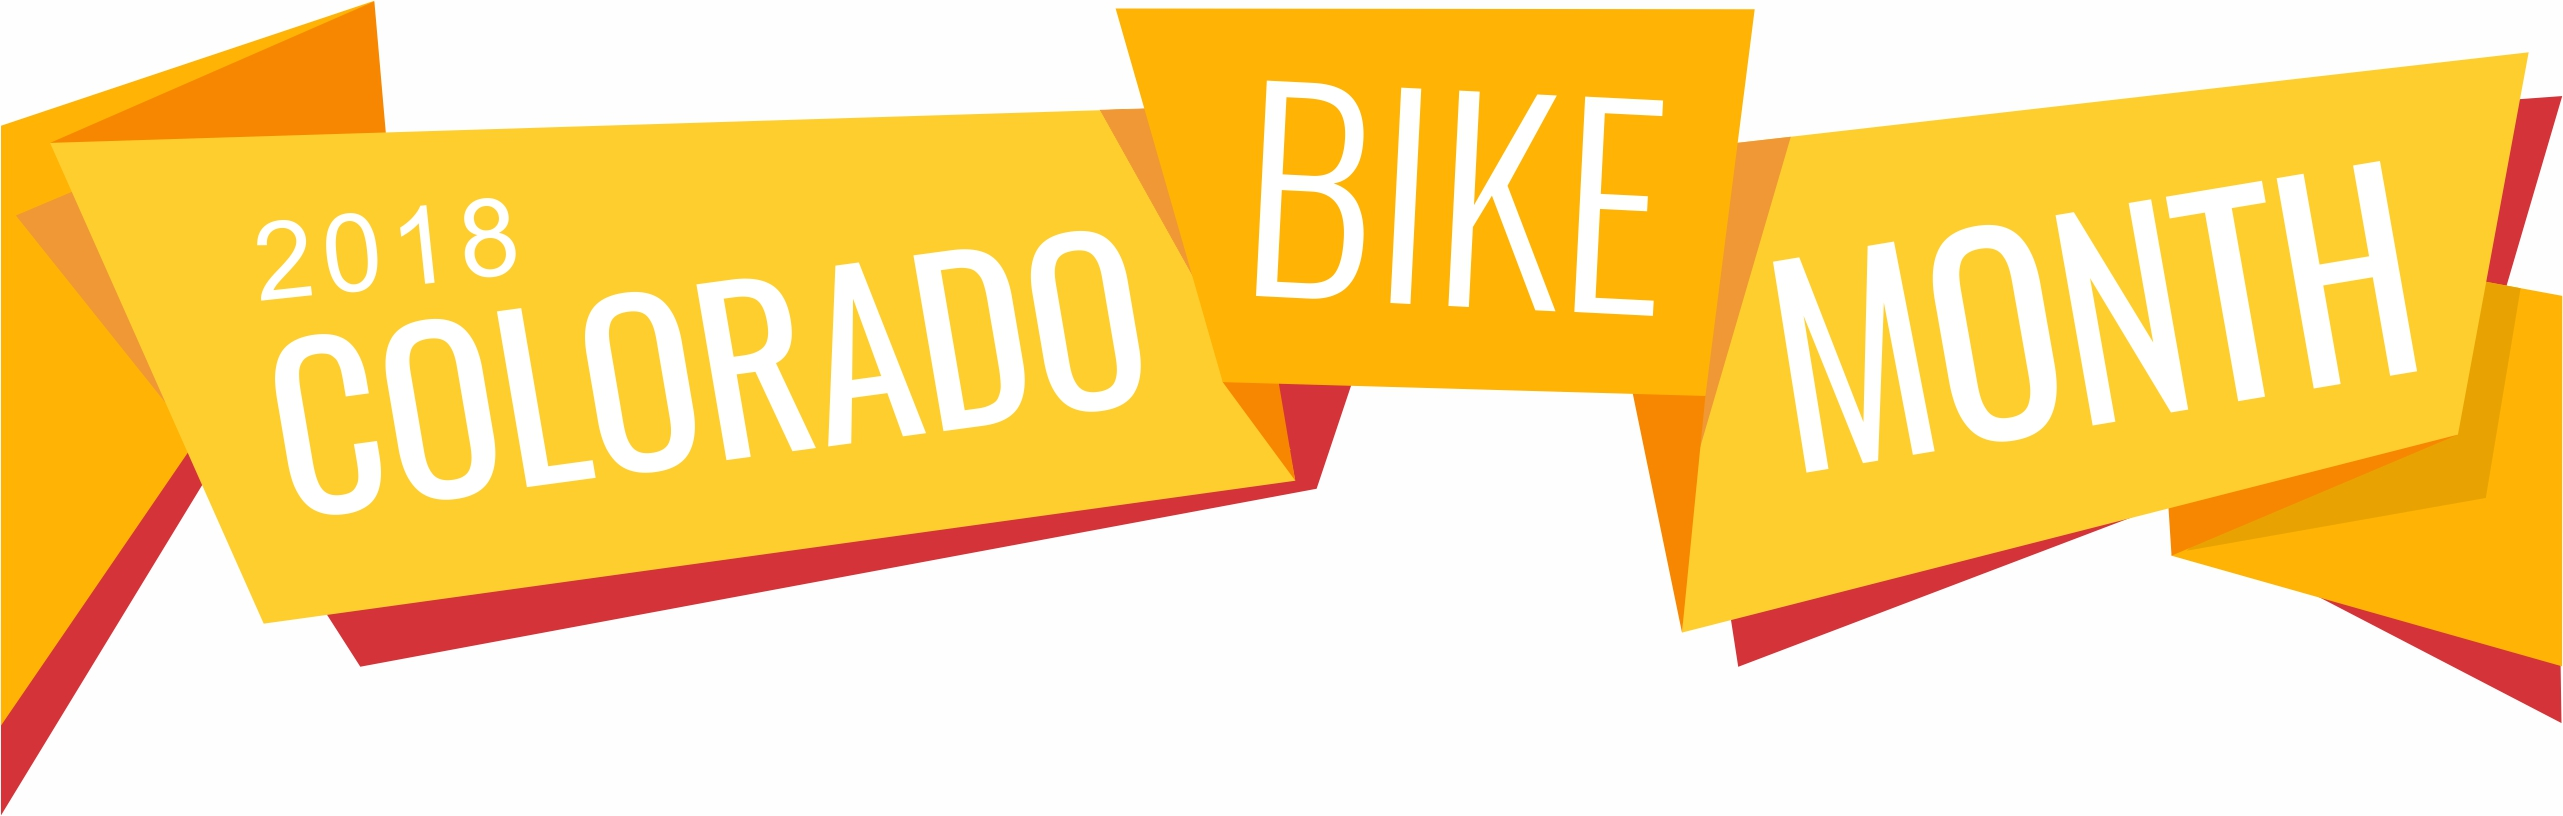 Colorado Bike to Work Banner